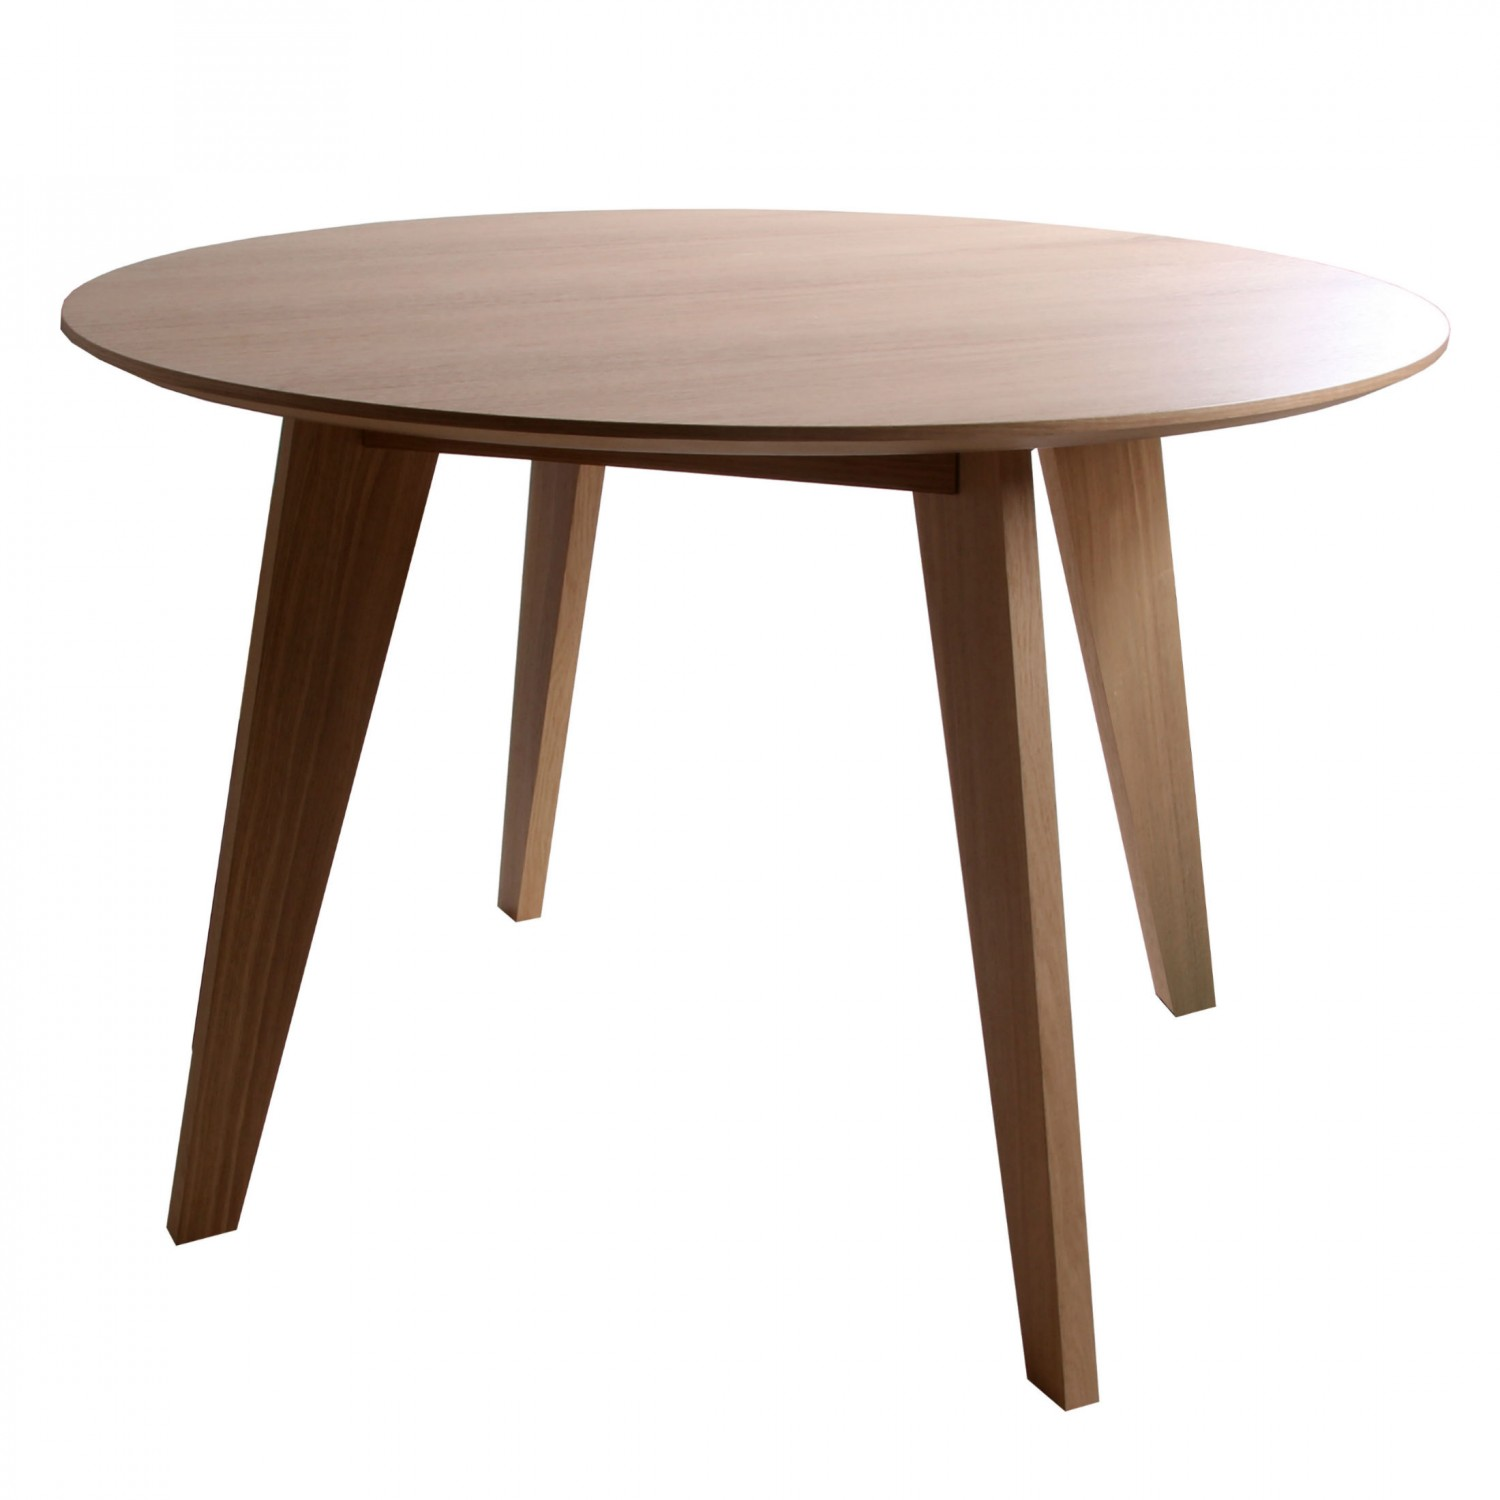 Table Ronde 100 Cm Table Ronde Design Scandinave Brin D 39ouest